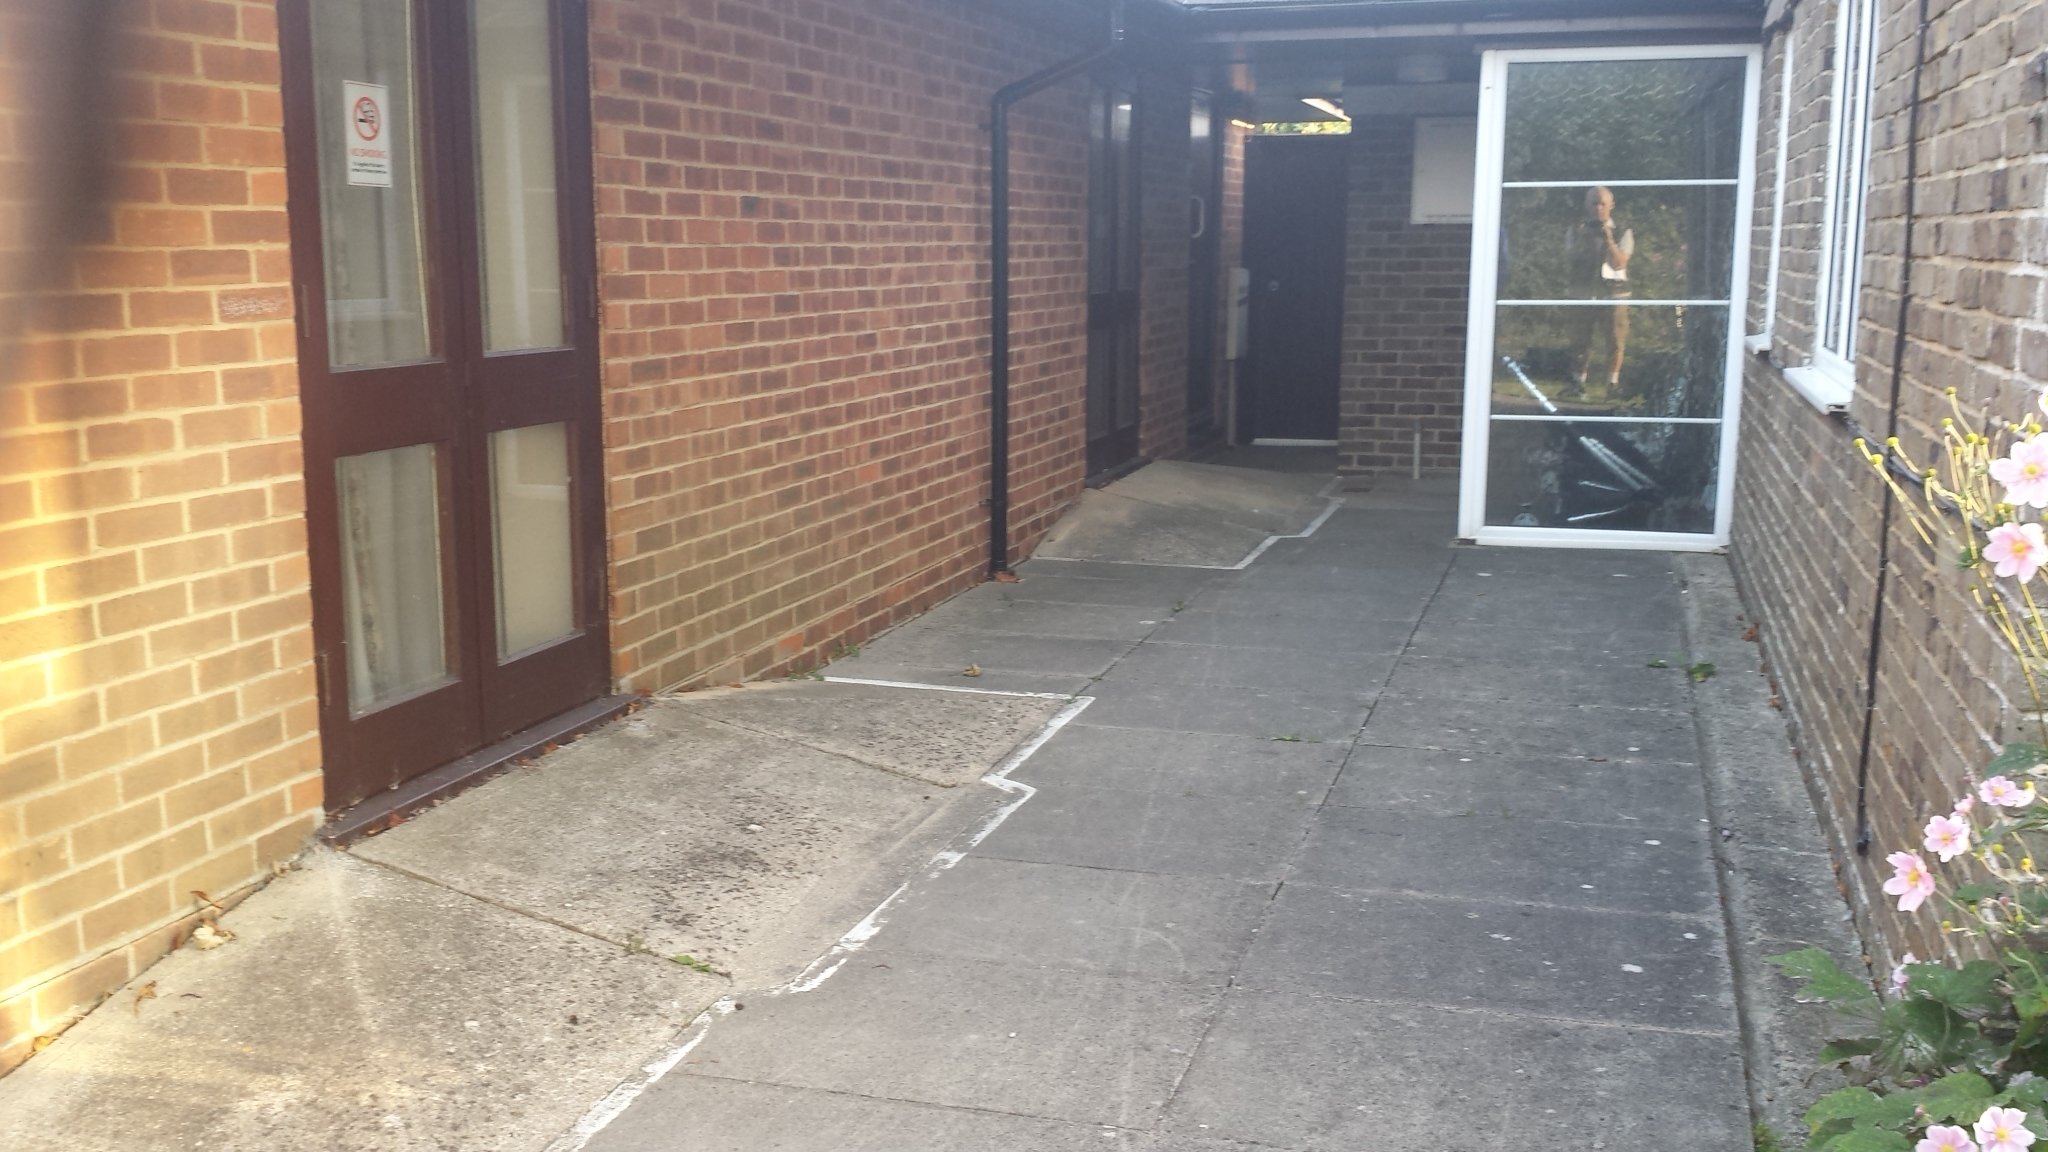 Removal concrete ramp near white frame glass partition and make good with granite grey resin bound aggregate